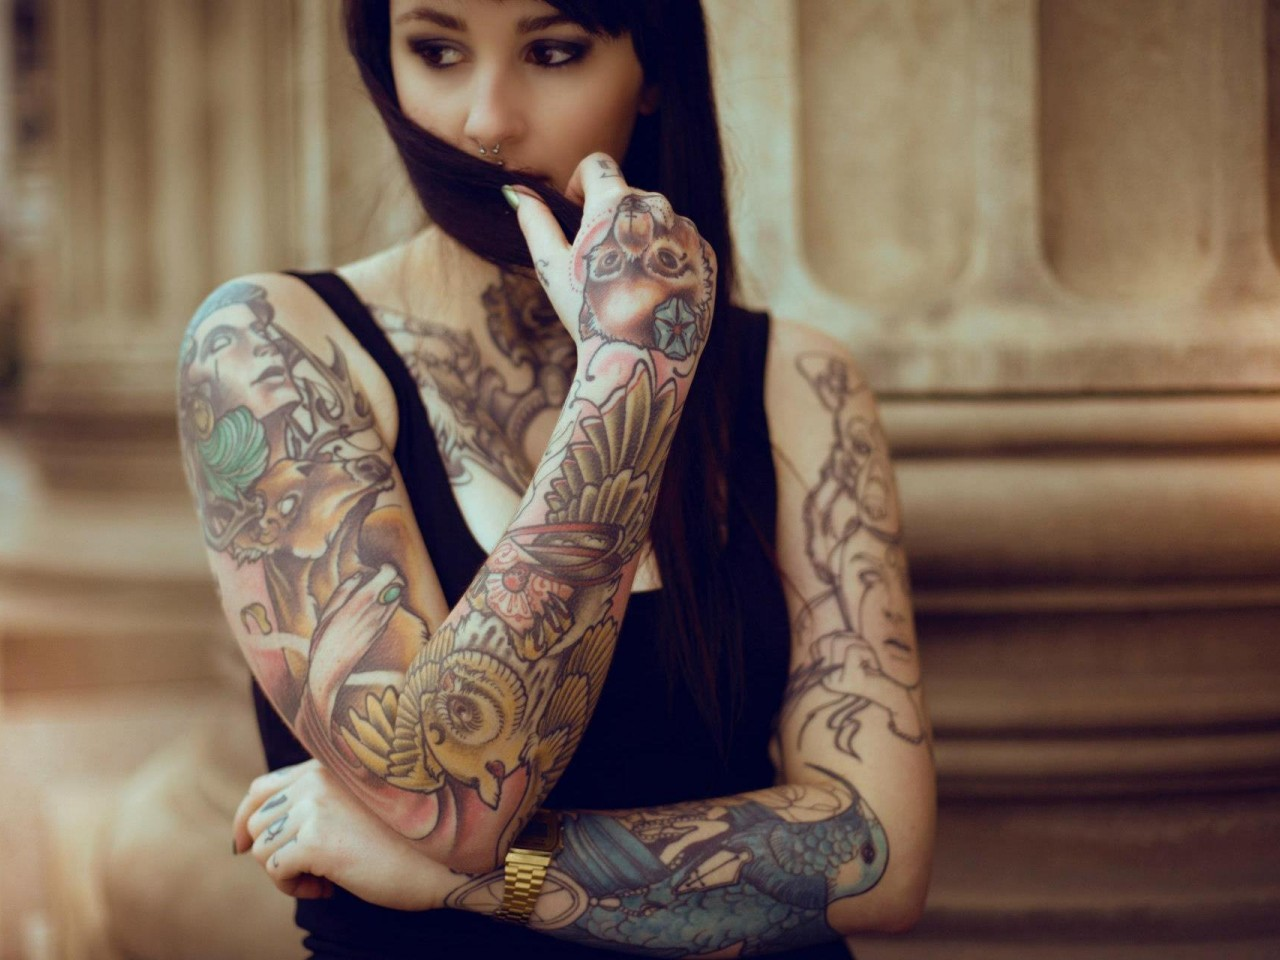 Sexy Wallpaper Sexy Hot Girls With Tattoos-5954